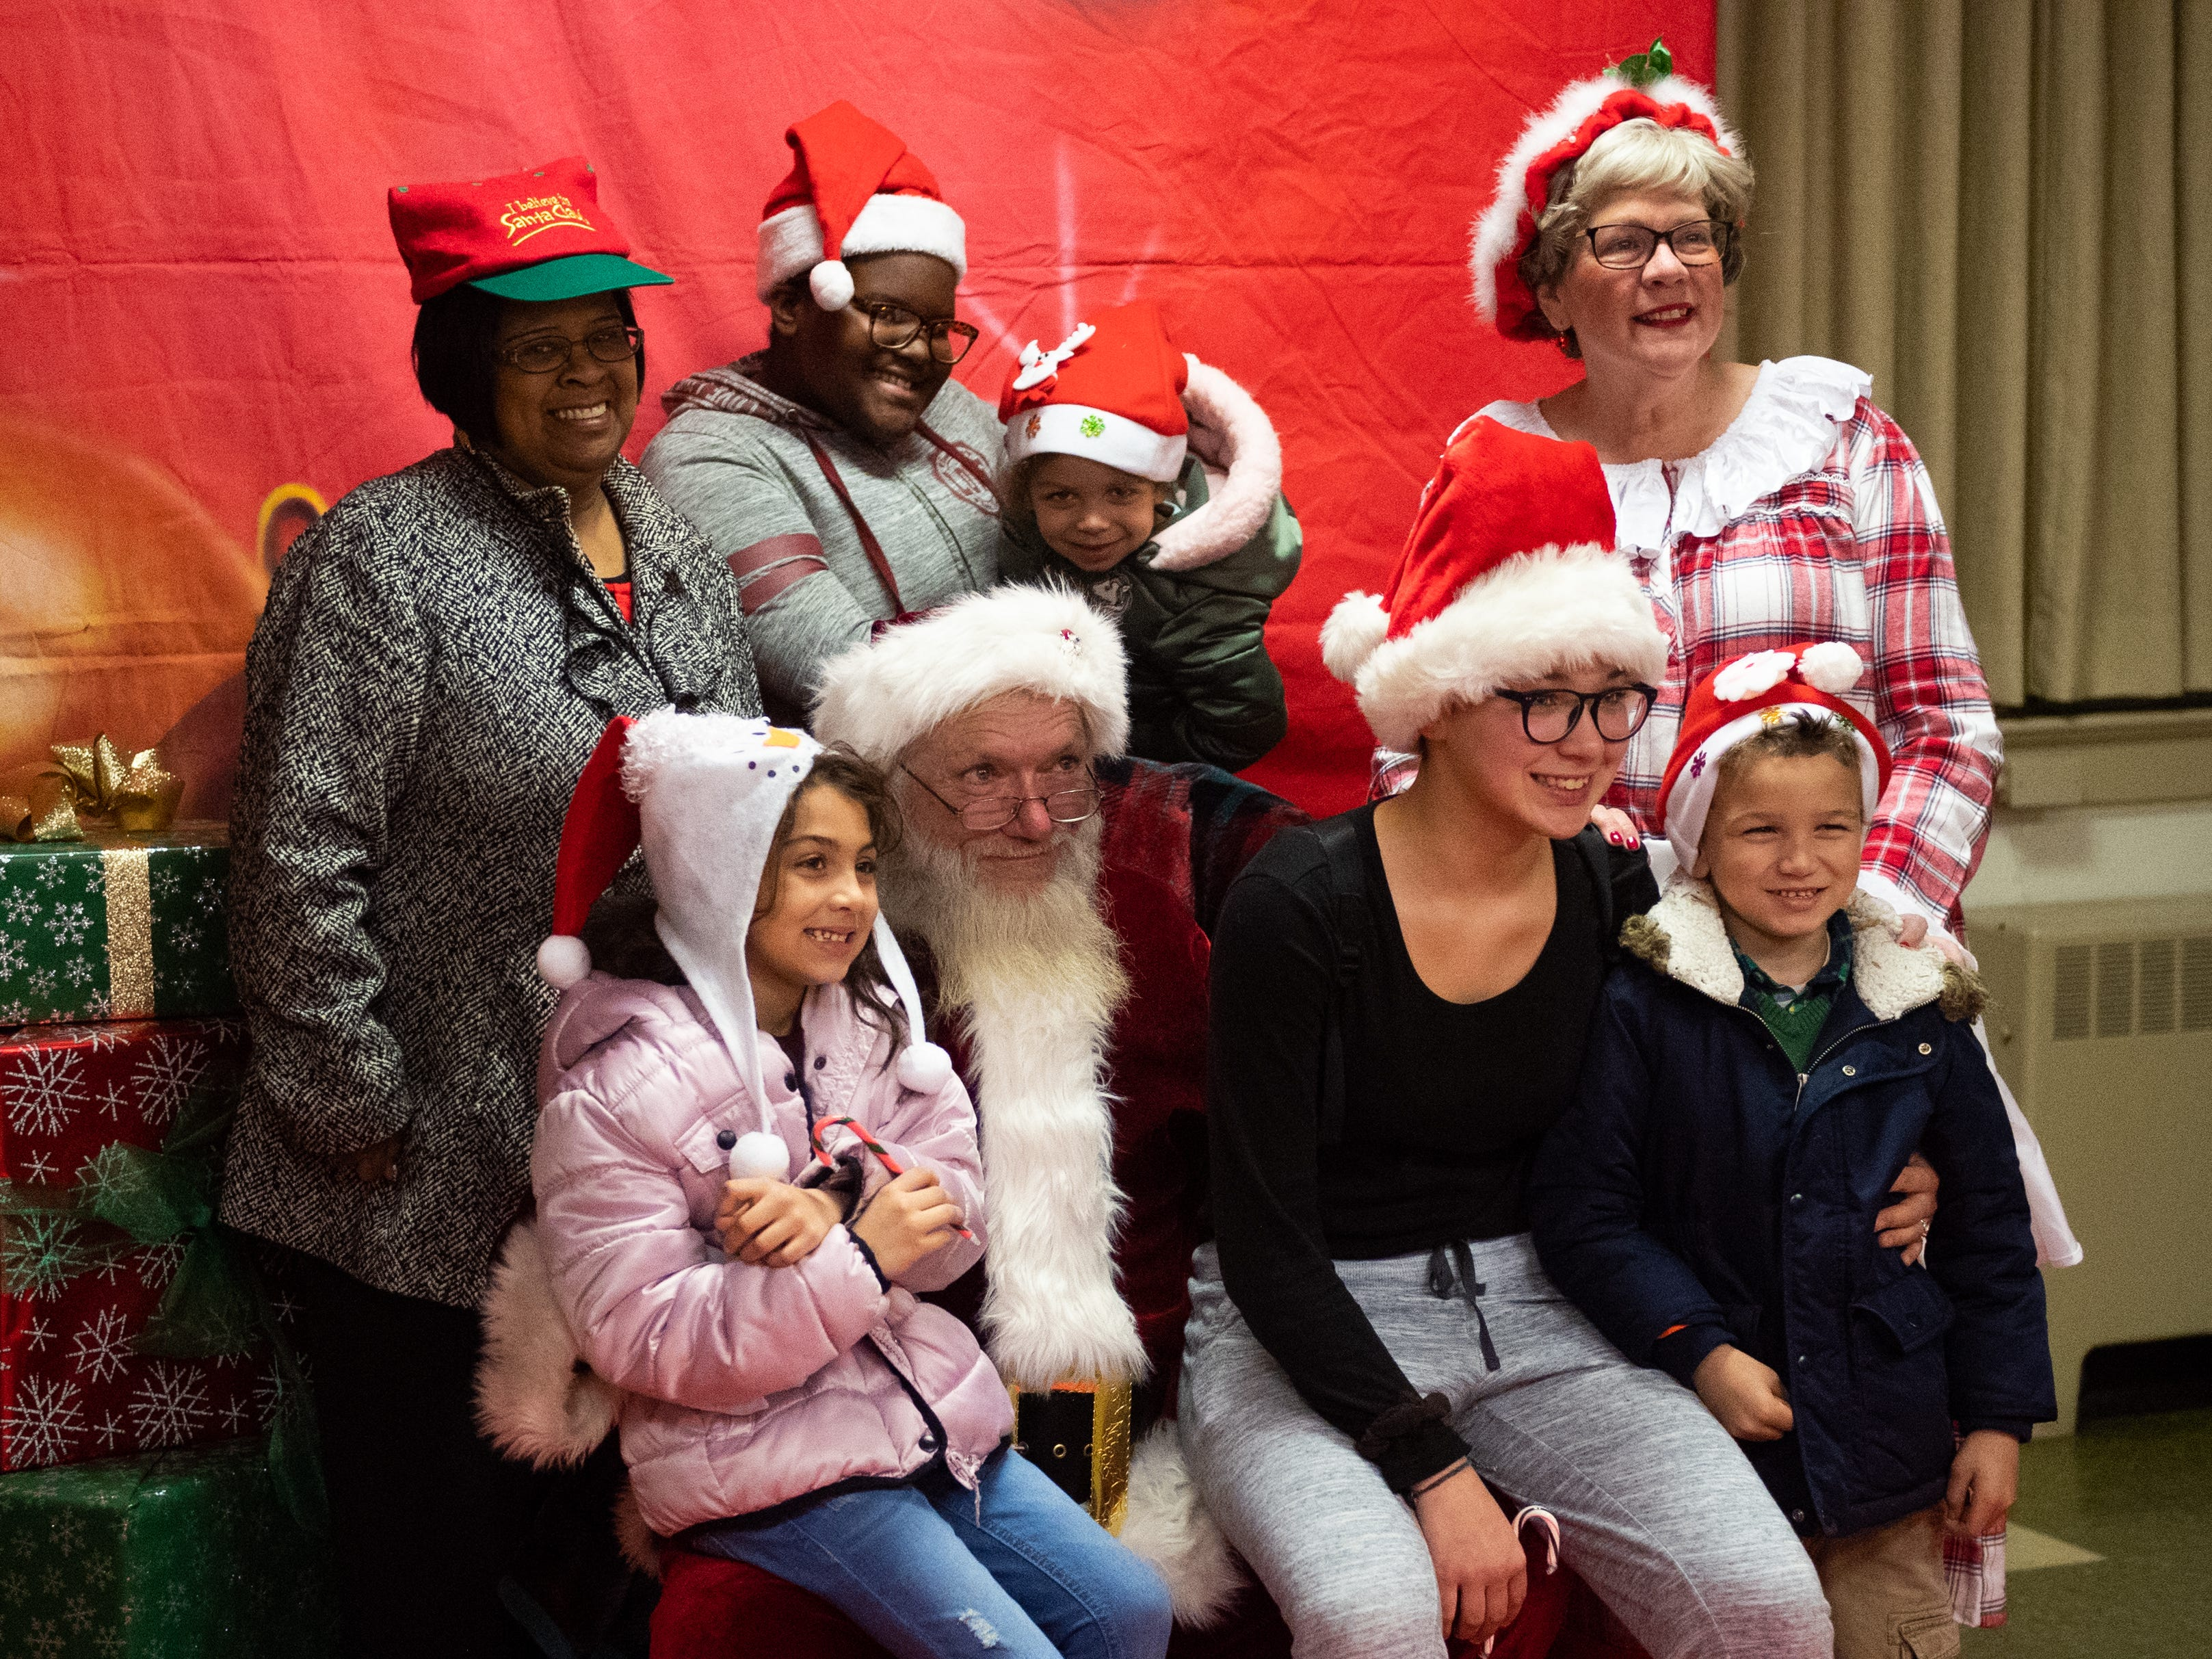 (left to right, top to bottom) Shirley Towles, TaJayla Williams, Kaylona Gadlin, Asi'lynn Gadlin, Rae'yhona Gadlin and Kay'lon Gadlin huddle together for a picture with Santa and Mrs. Claus during the Annual Evening with Santa, December 13, 2018.